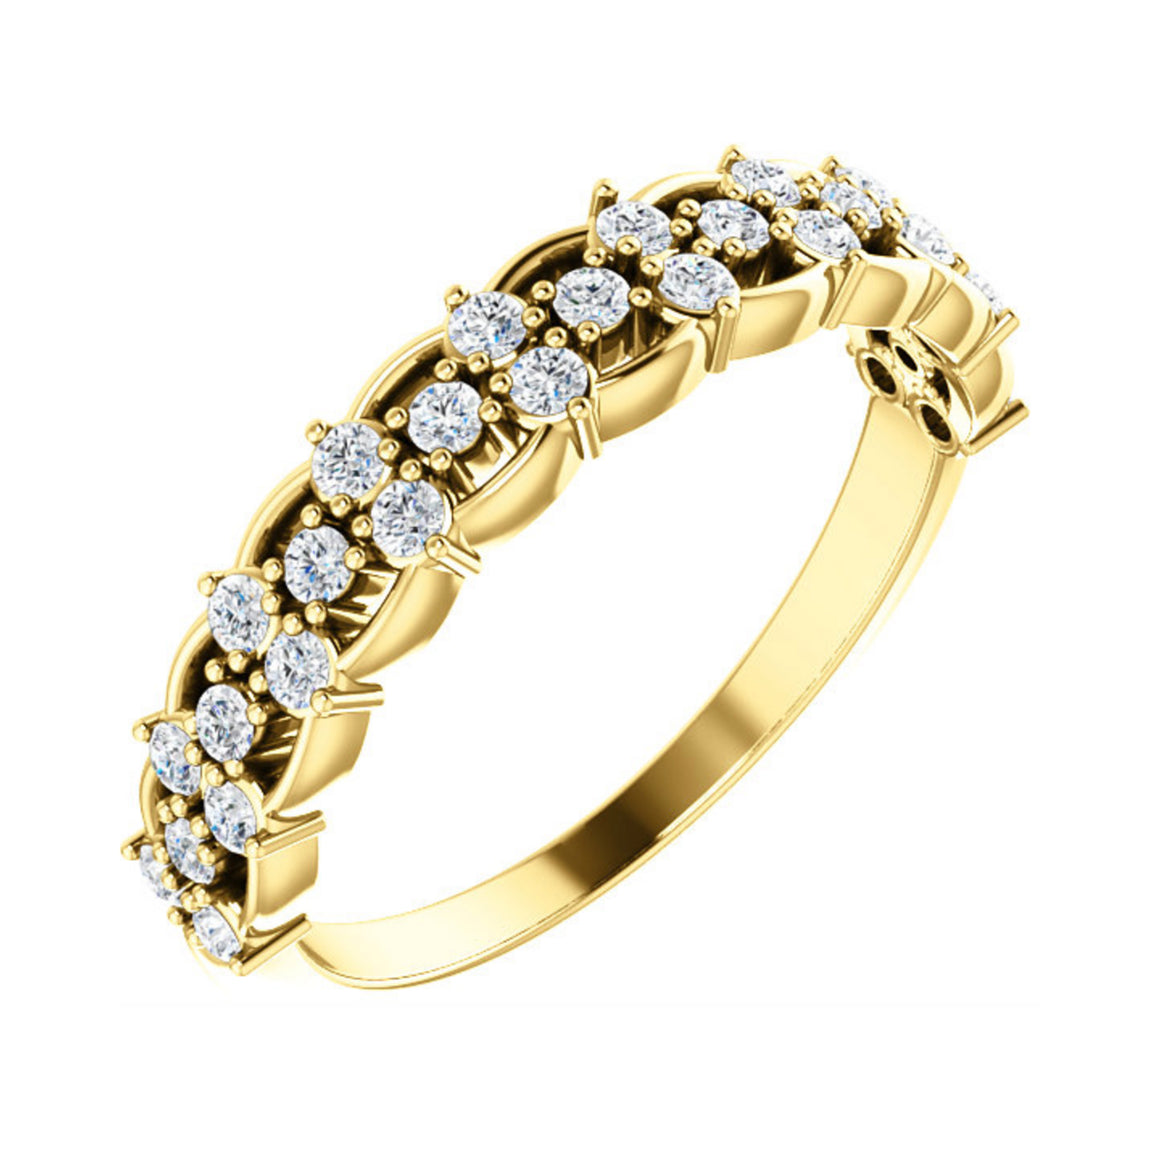 14k Gold 3/8 Carat Diamond Stacking Band - Talisman Collection Fine Jewelers